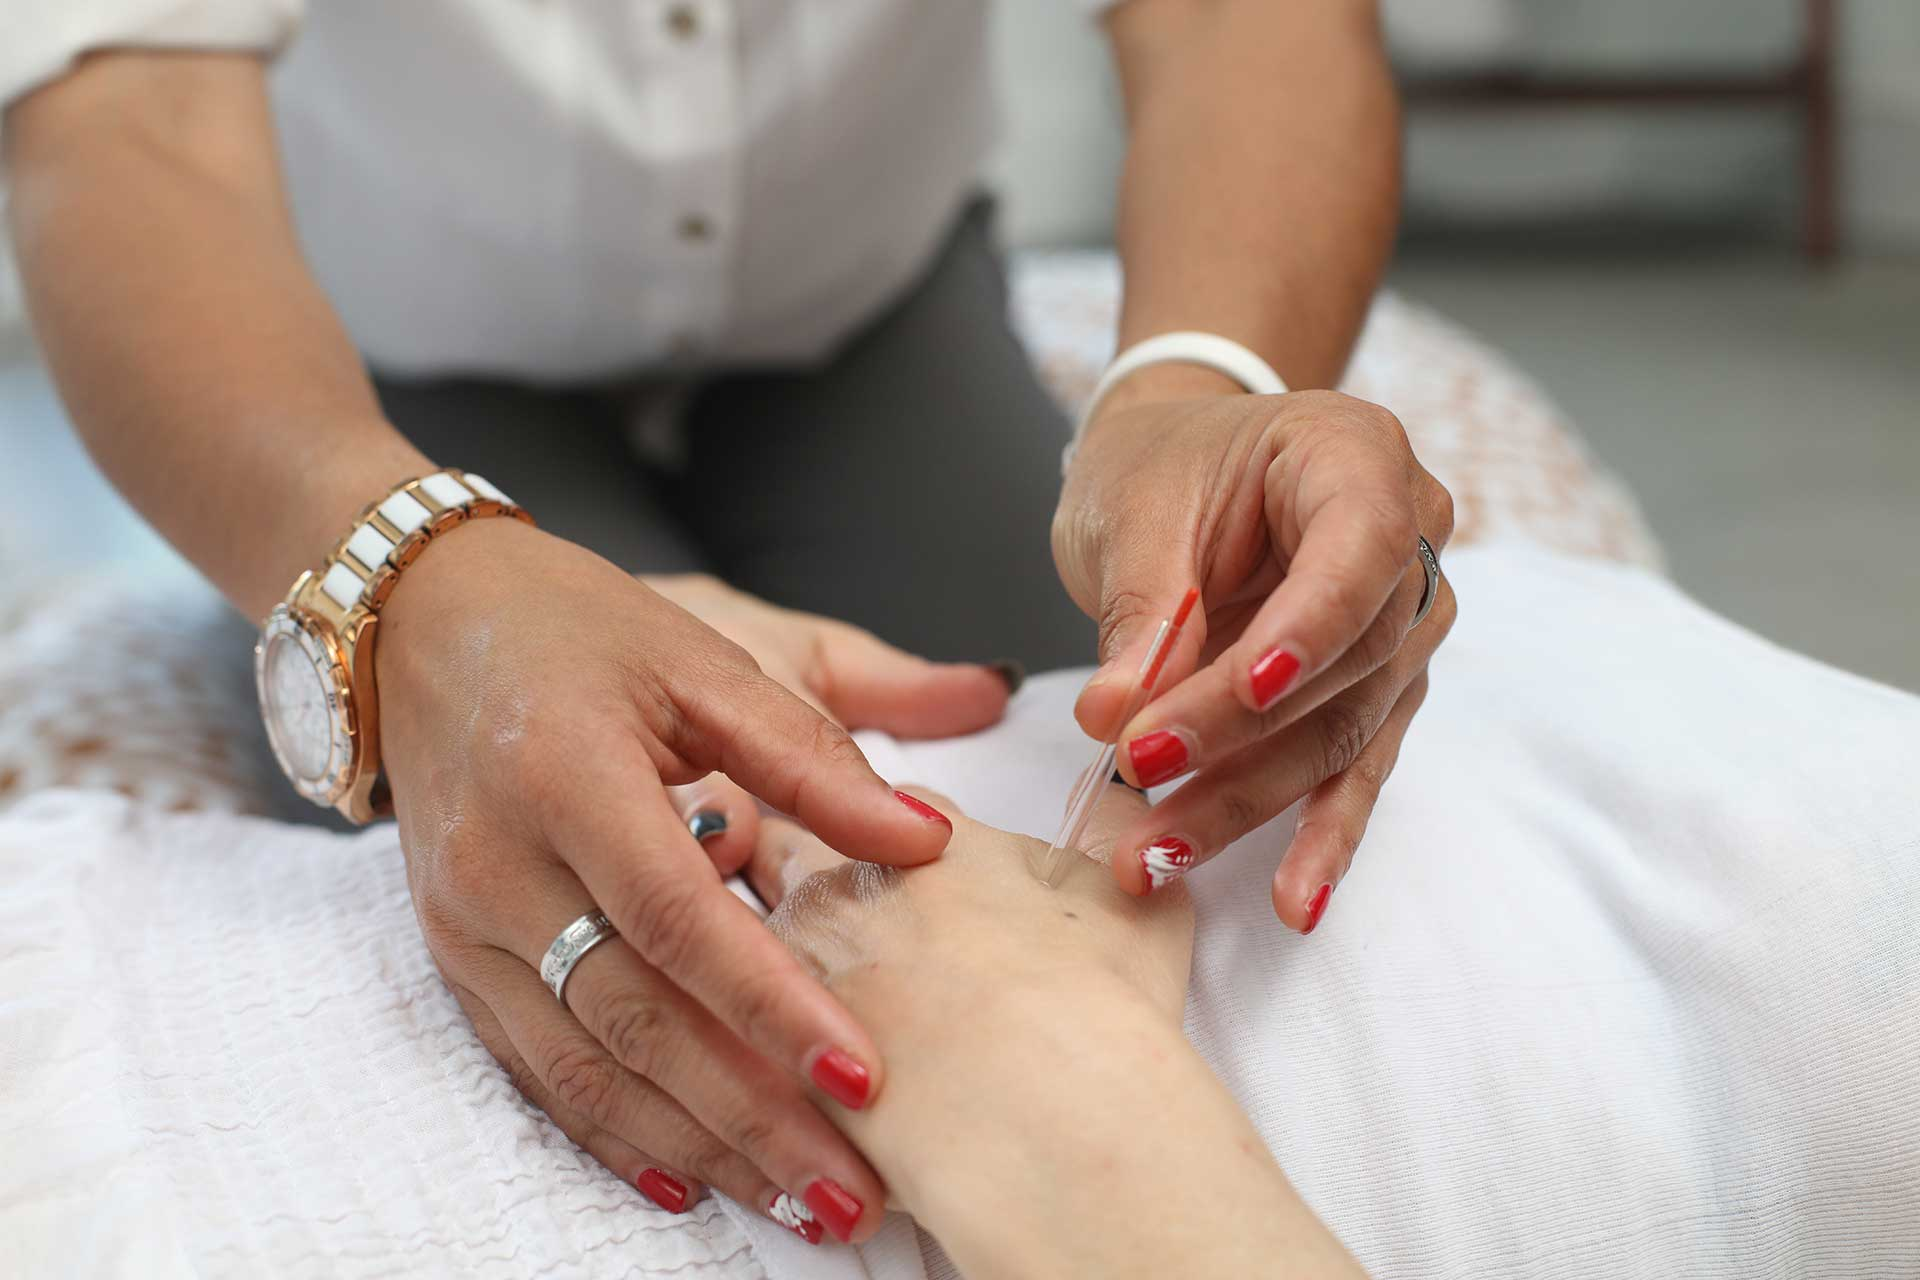 hands of a female acupuncturist treating a patient's hand